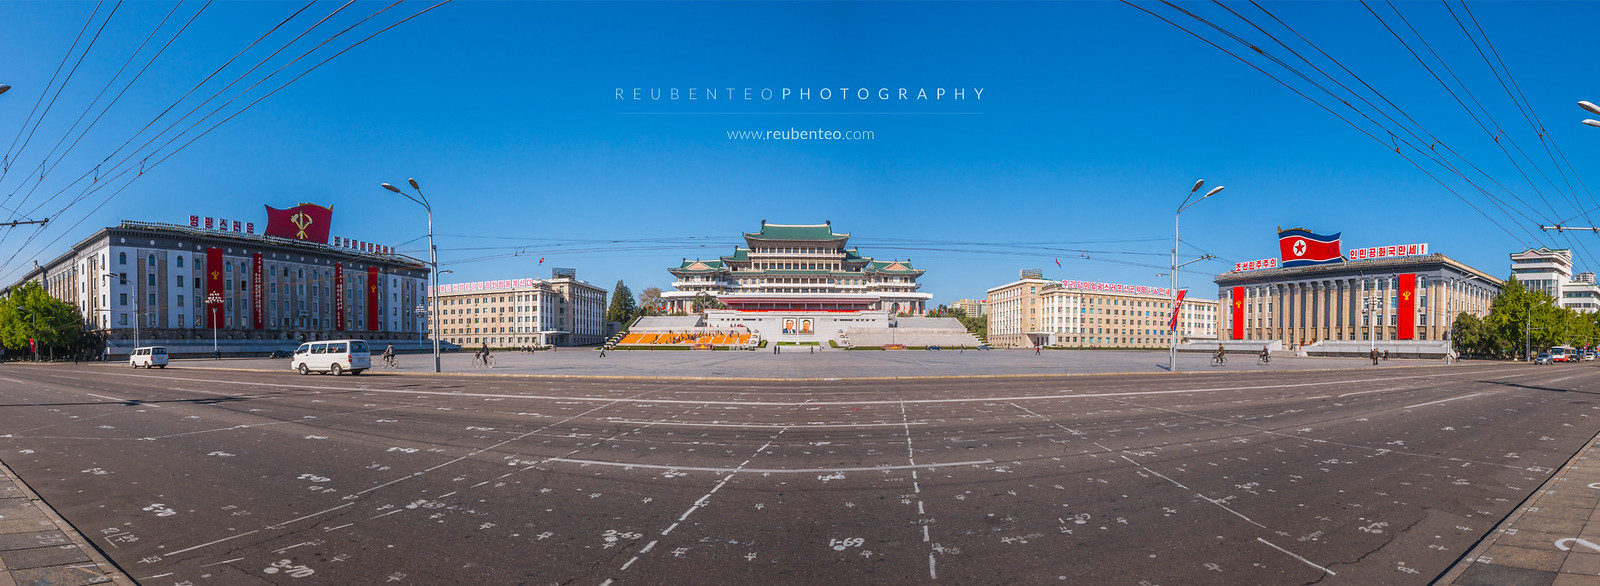 Kim Il Sung Square view of Grand People's Study House